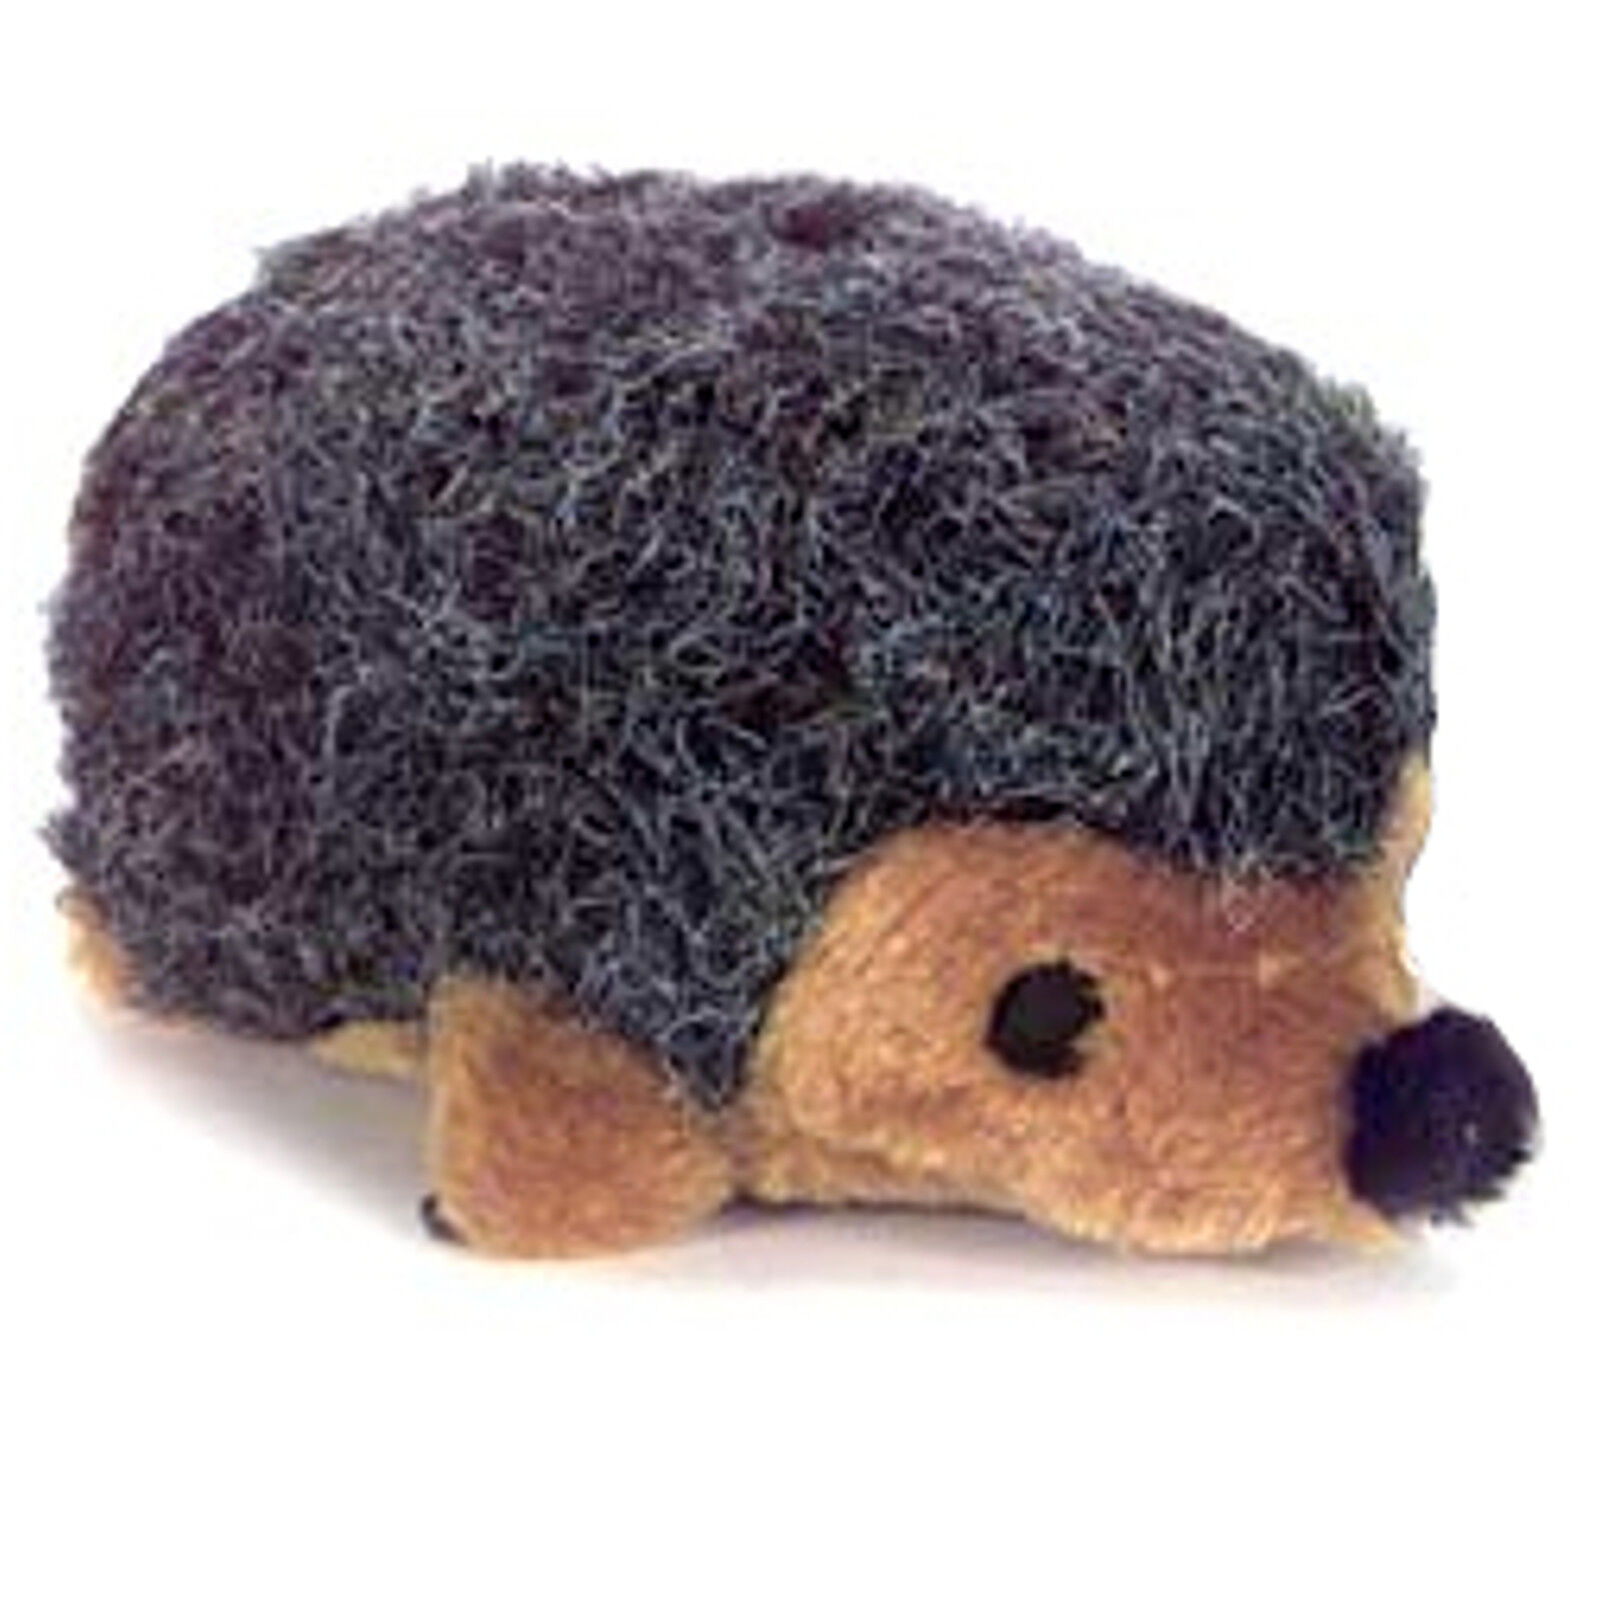 Squeaky Hedgehog SMALL Plush Dog Squeaker Toy | eBay